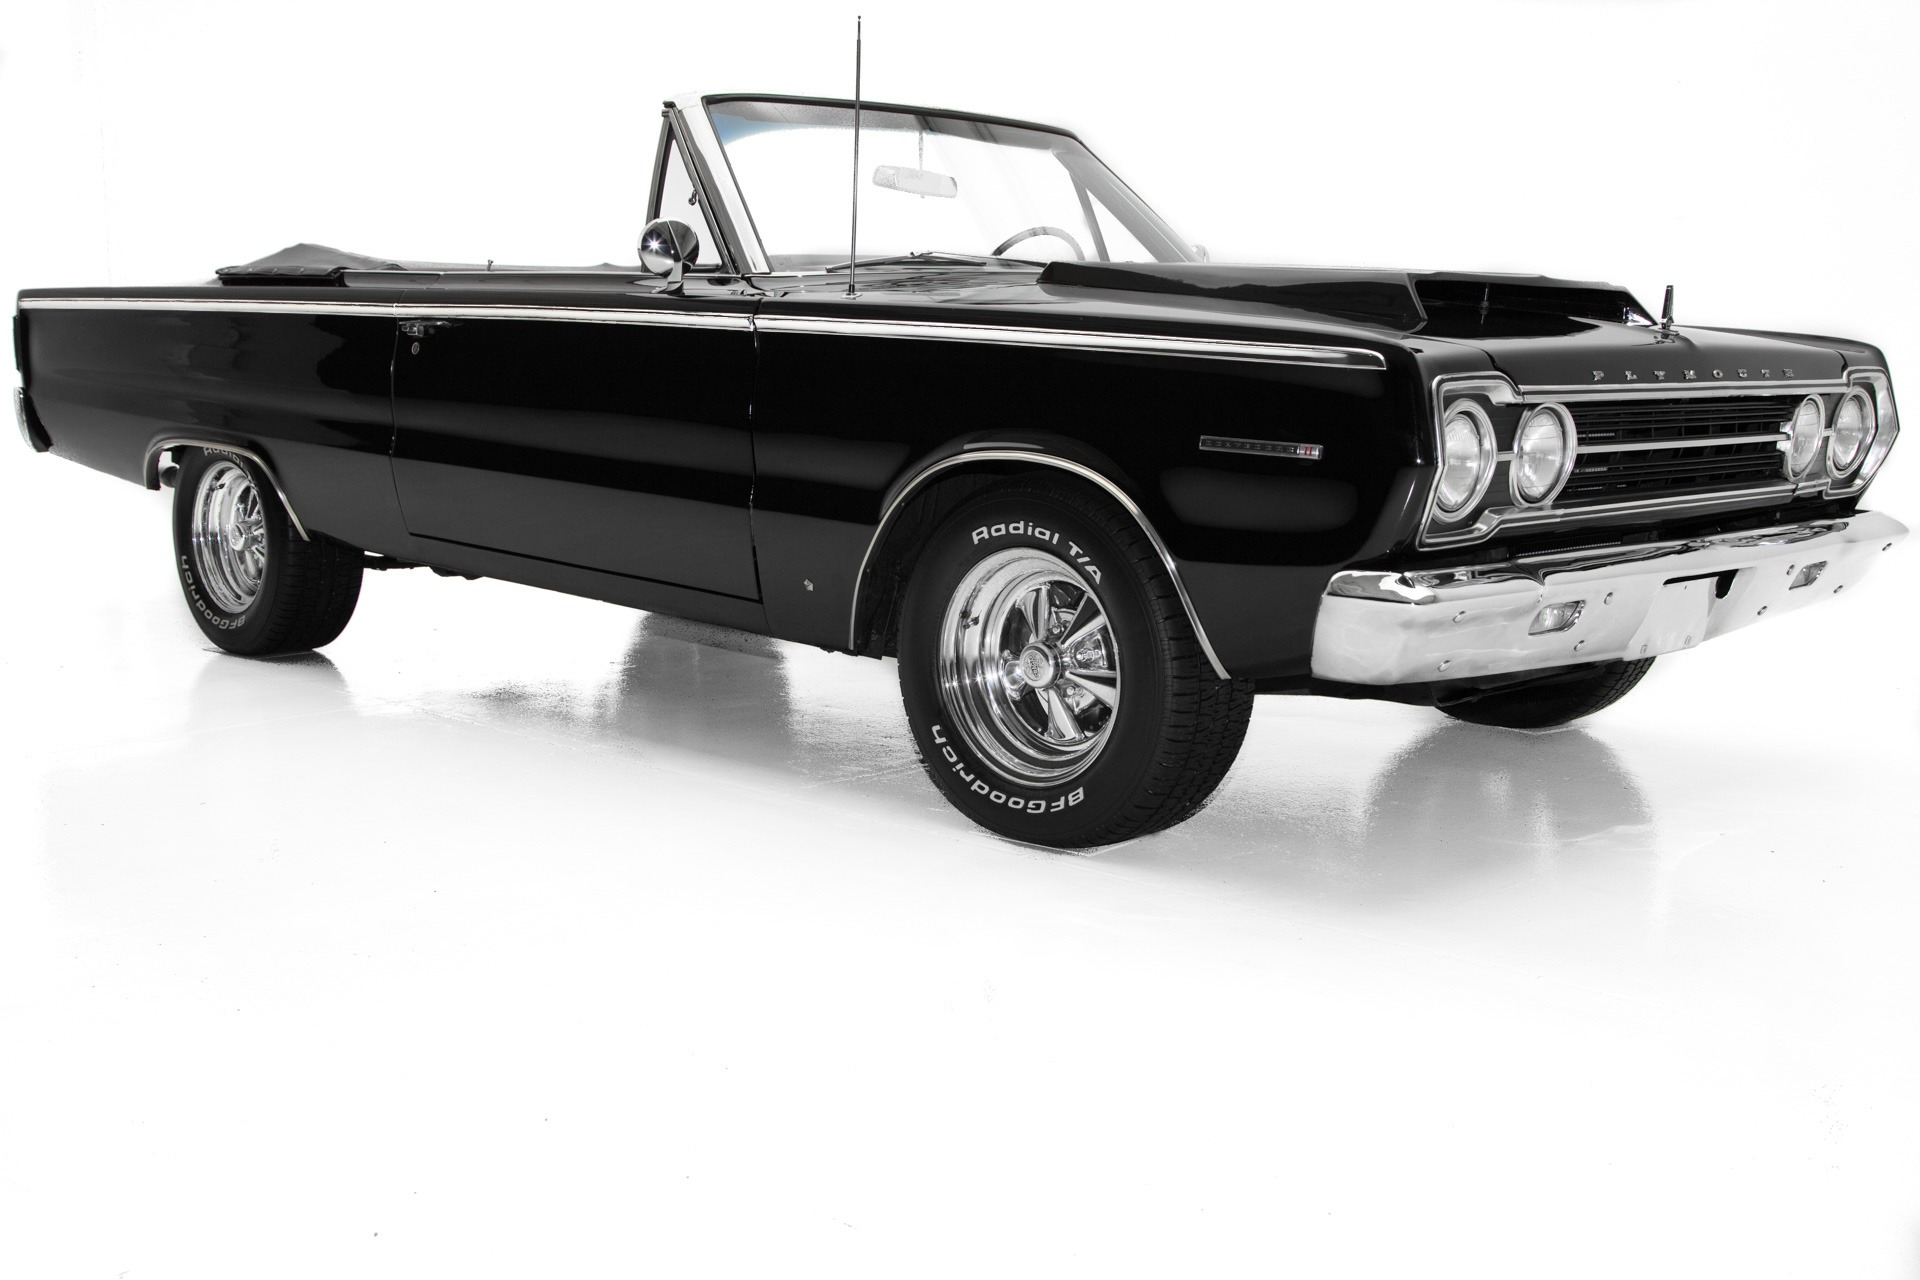 Photo 1967 Plymouth Belvedere II Triple Black New 360 Great Car WHOLESALE CLEARANCE PRICED 32900